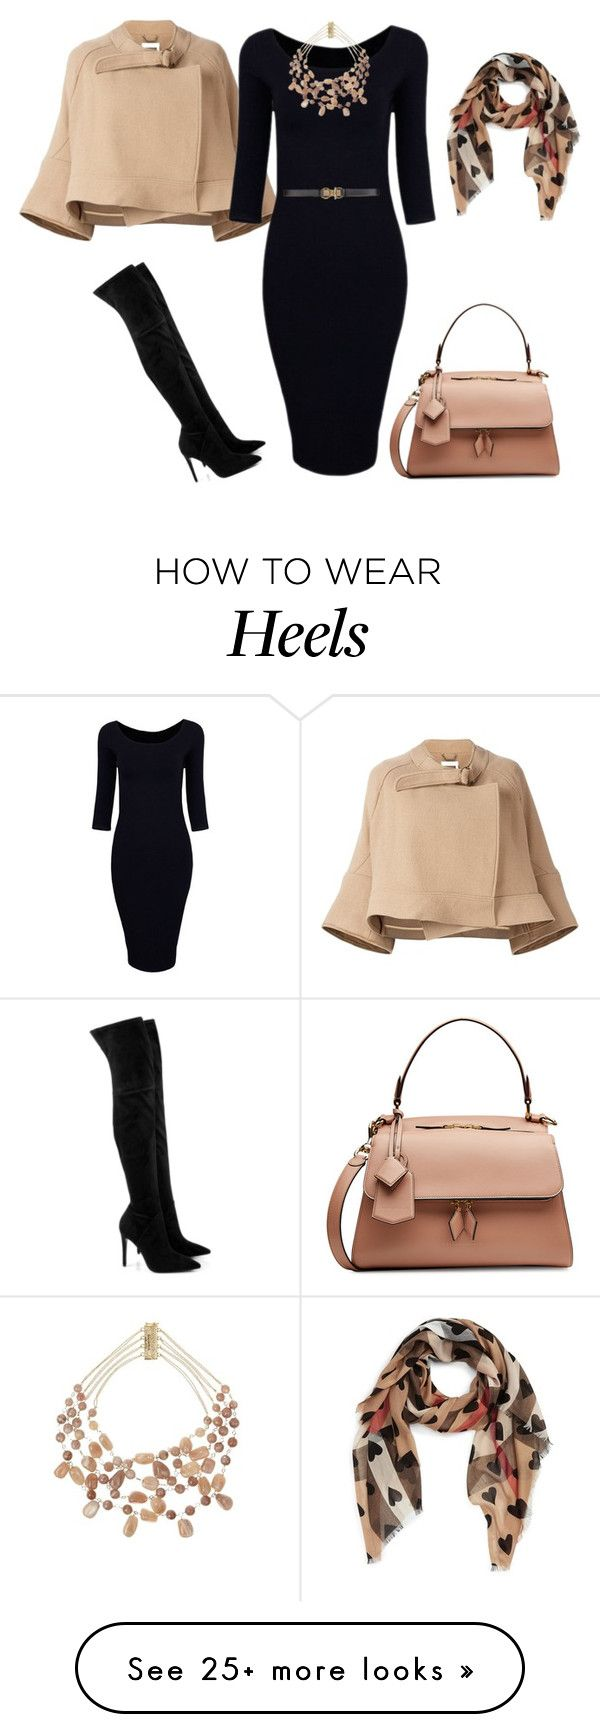 """outfit 5045"" by natalyag on Polyvore featuring Chloé, Kendall + Kylie, Victoria Beckham, Burberry, Rosantica and BCBGMAXAZRIA"